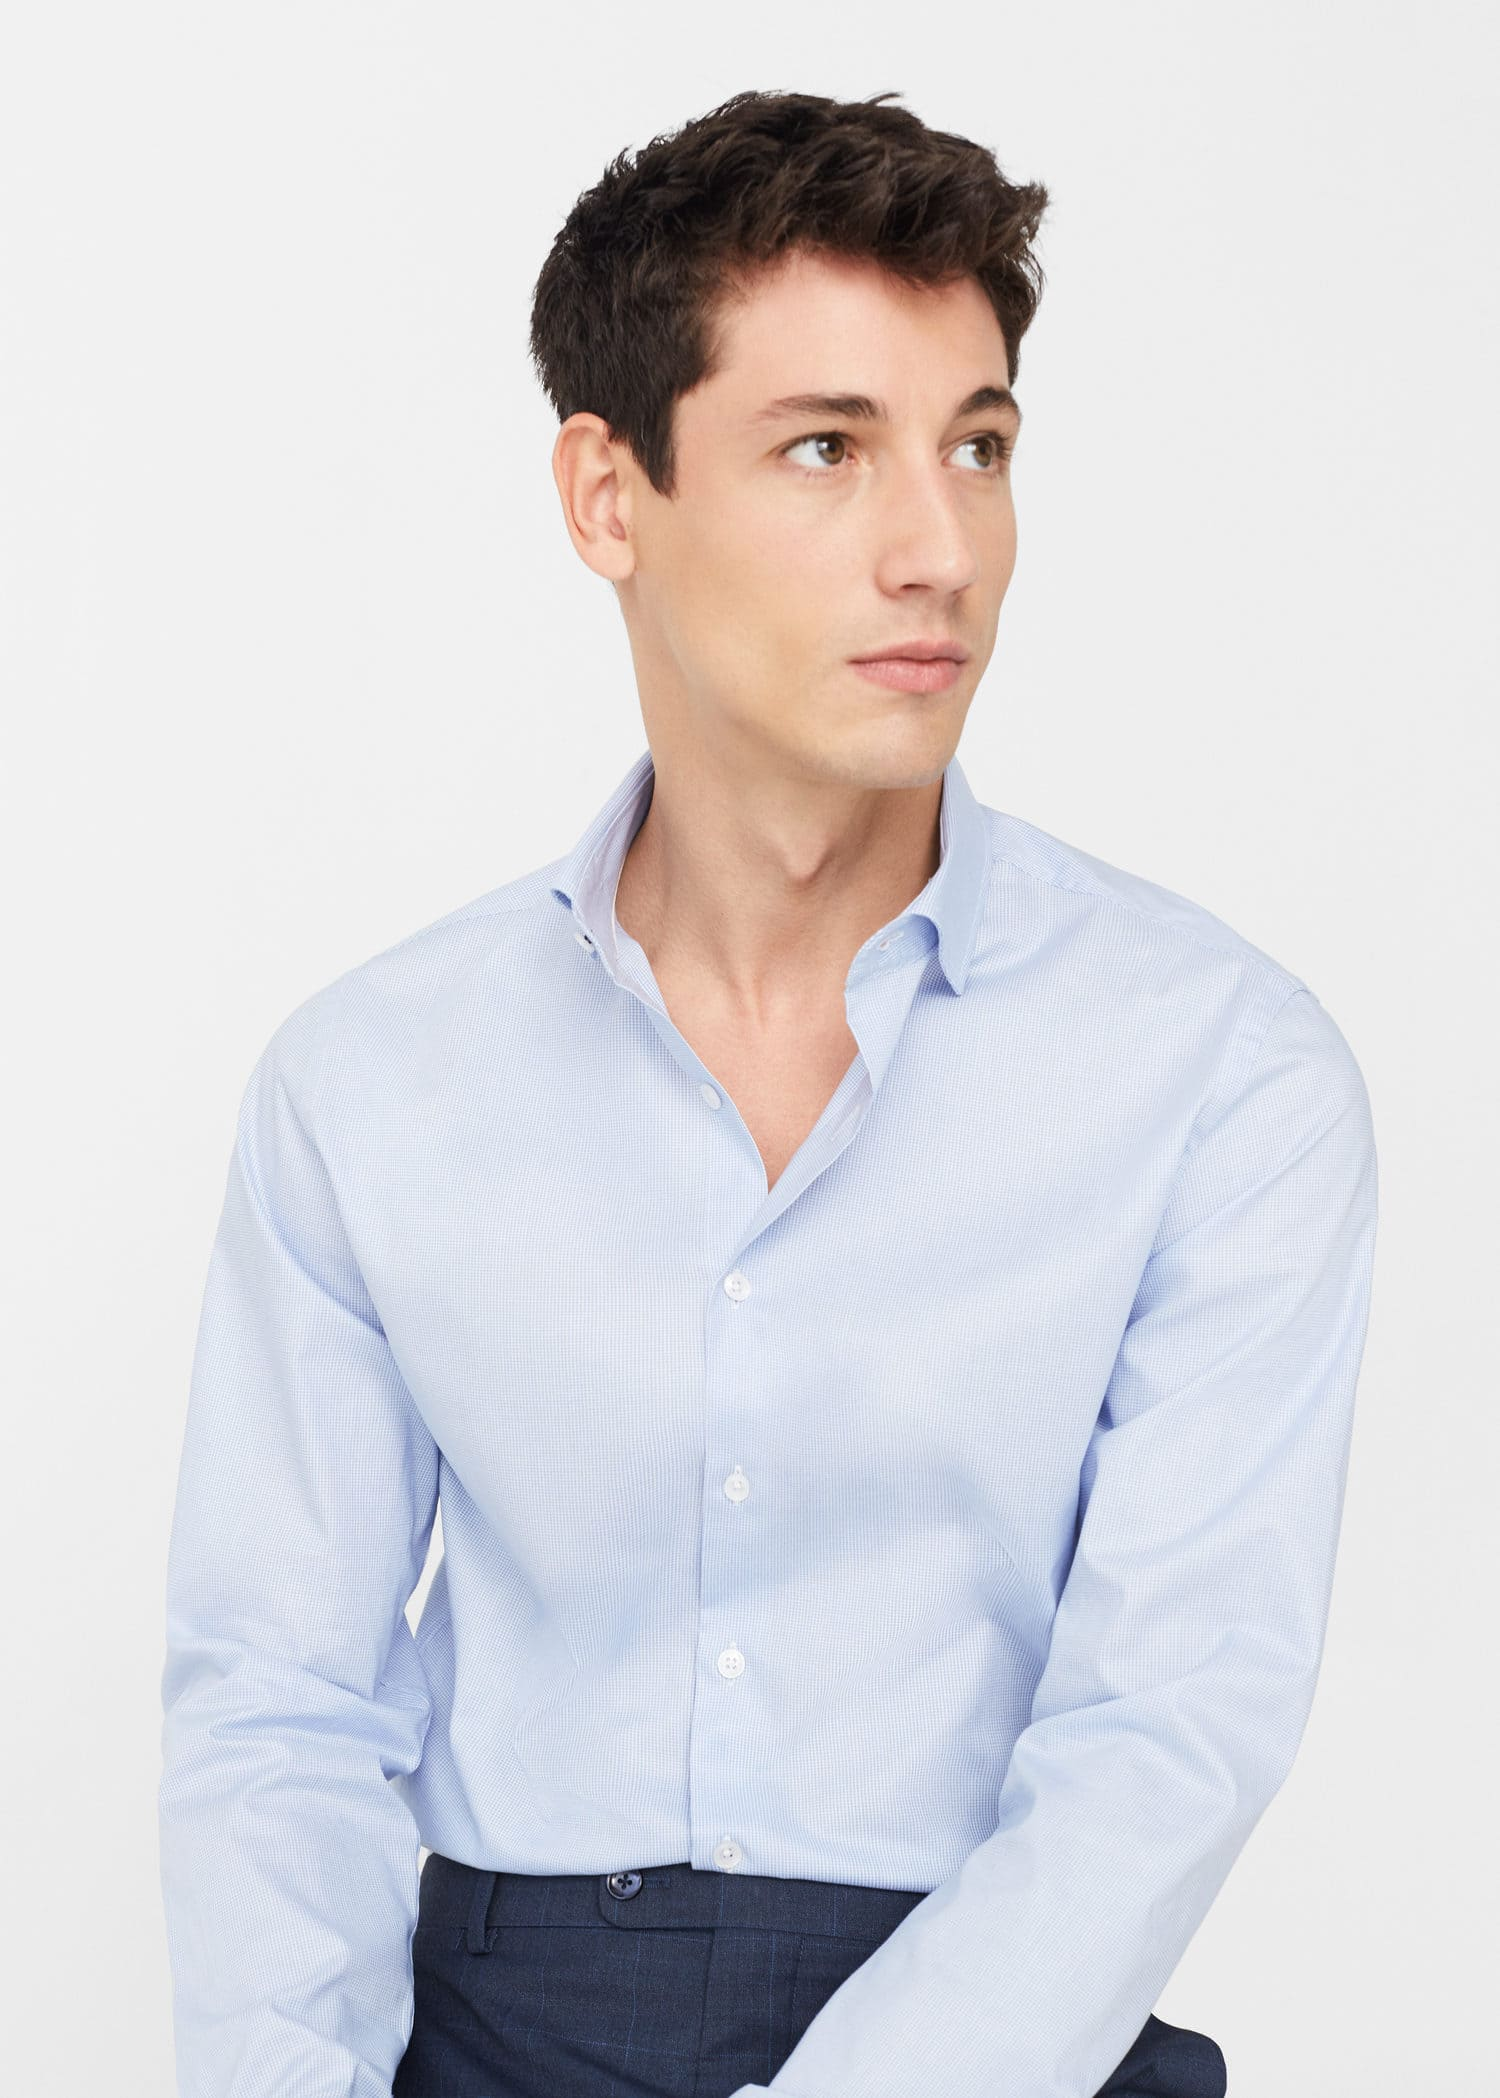 Fit Mango Gallo Pata Micro Slim De Tailored Camisa Man Hombre wq6EHI